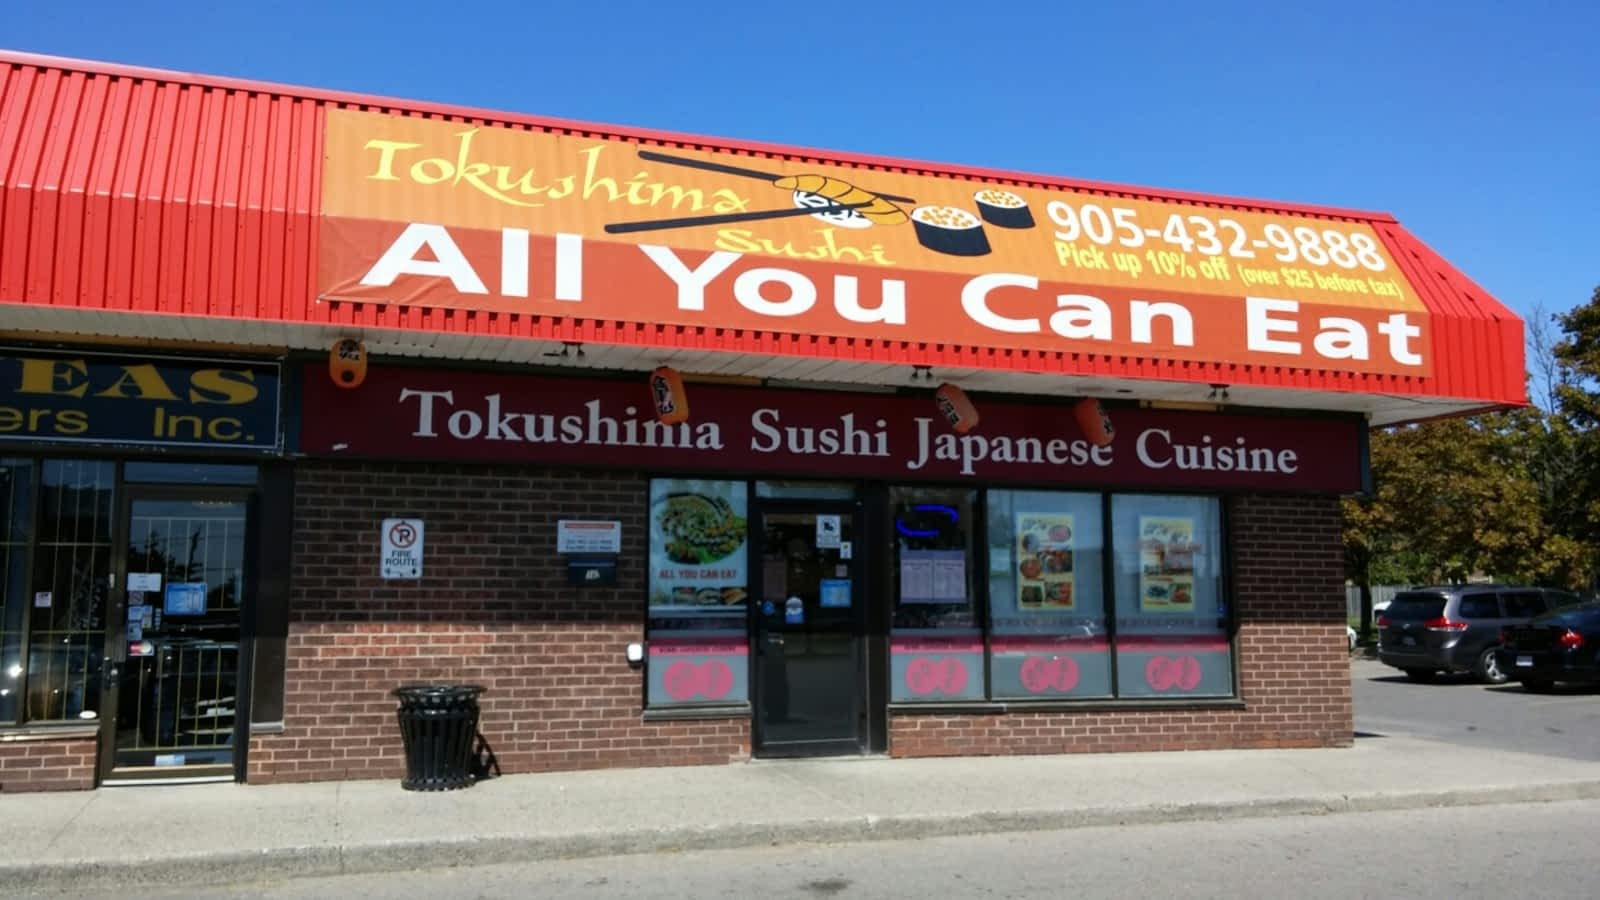 Tokushima sushi japanese resta opening hours 16 250 for Asian cuisine oshawa